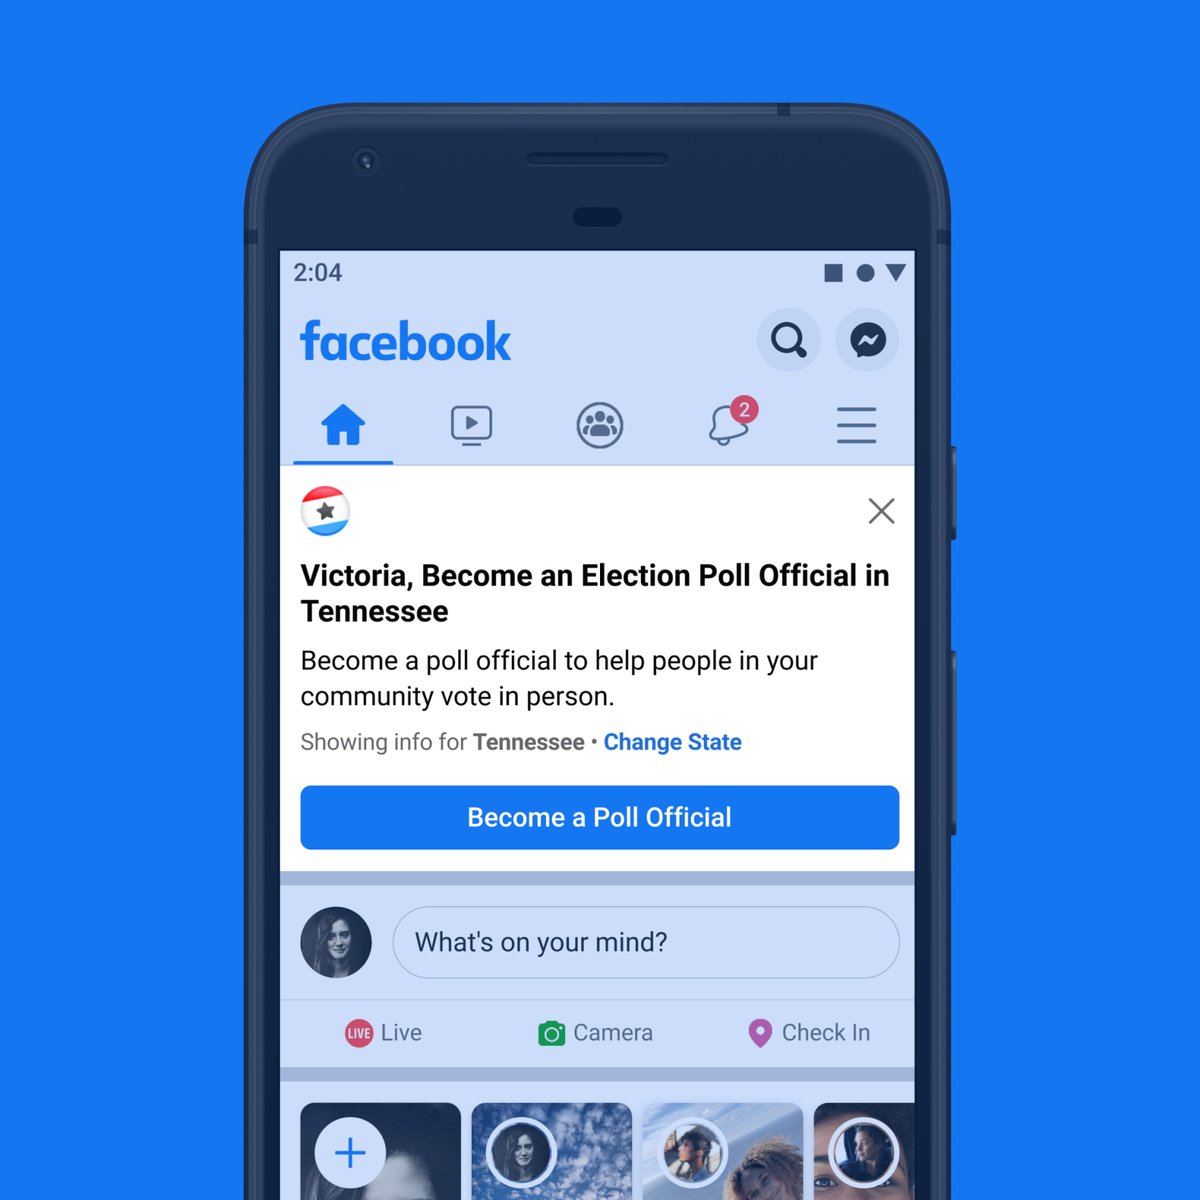 This month we ran a poll worker recruitment drive on  @facebookapp. In one day, we estimate that we helped about 100,000 people sign up, based on conversion rates from a number of states we've partnered with. To sign up for this critical role, visit